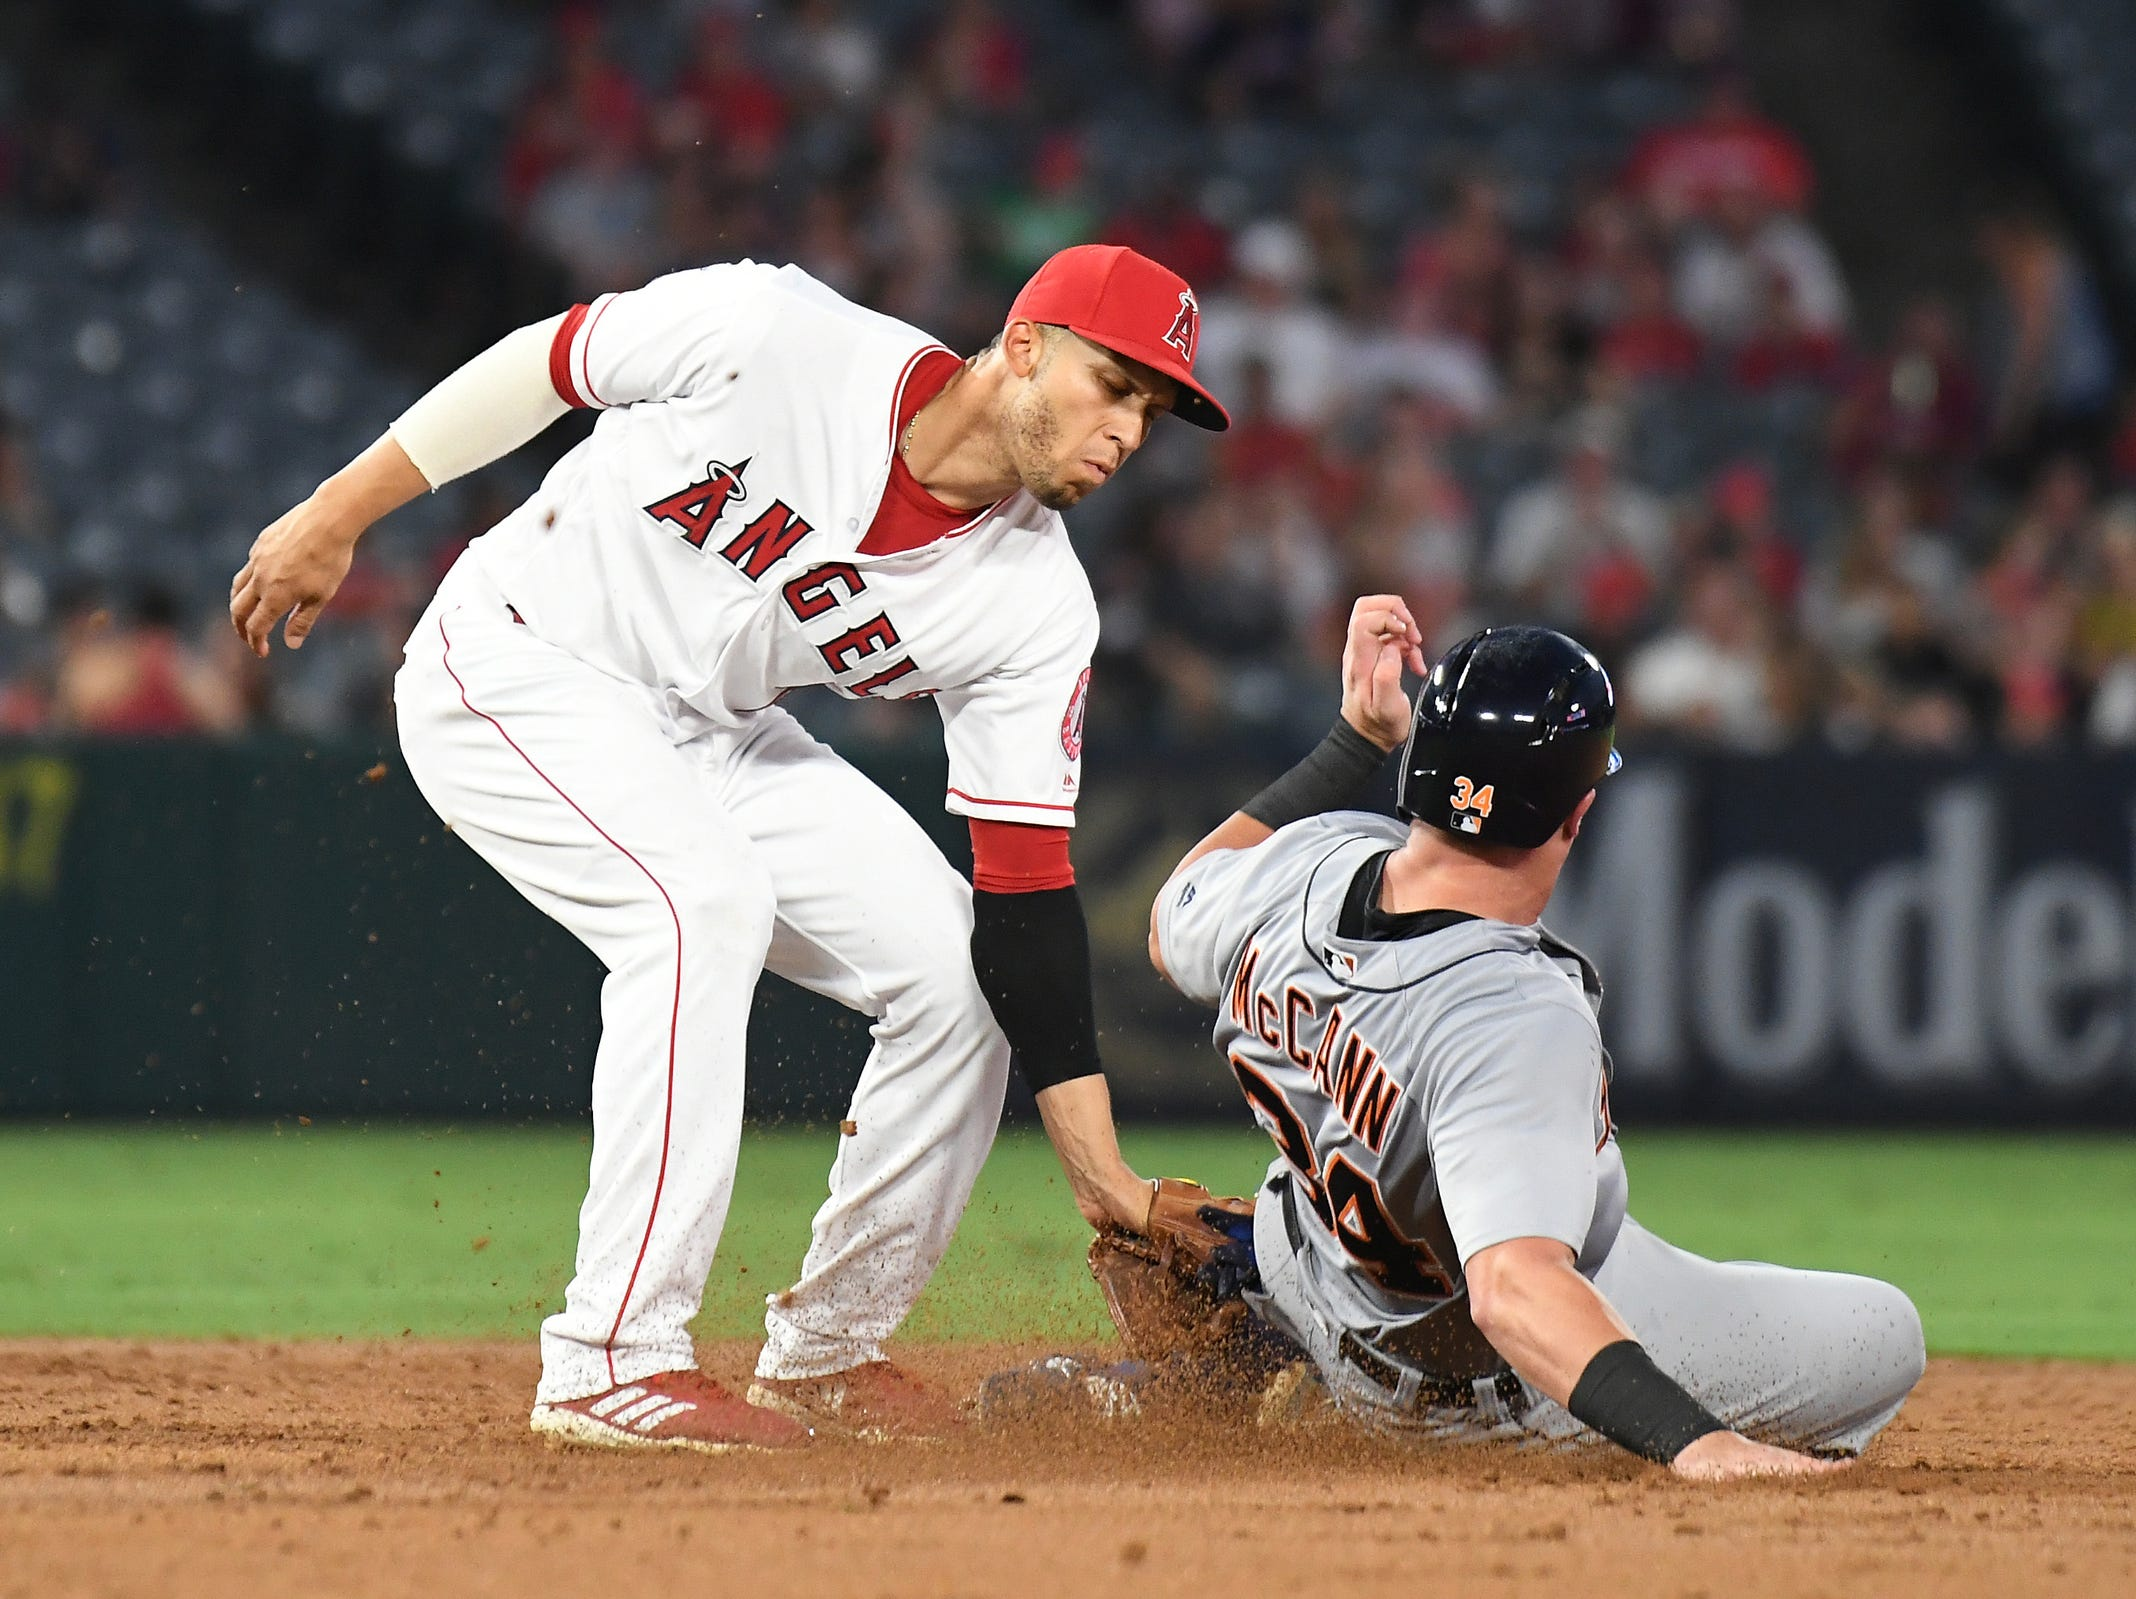 Tigers catcher James McCann attempts to steal as Angels shortstop Andrelton Simmons applies a tag during the third inning on Monday, Aug. 6, 2018, in Anaheim, Calif.